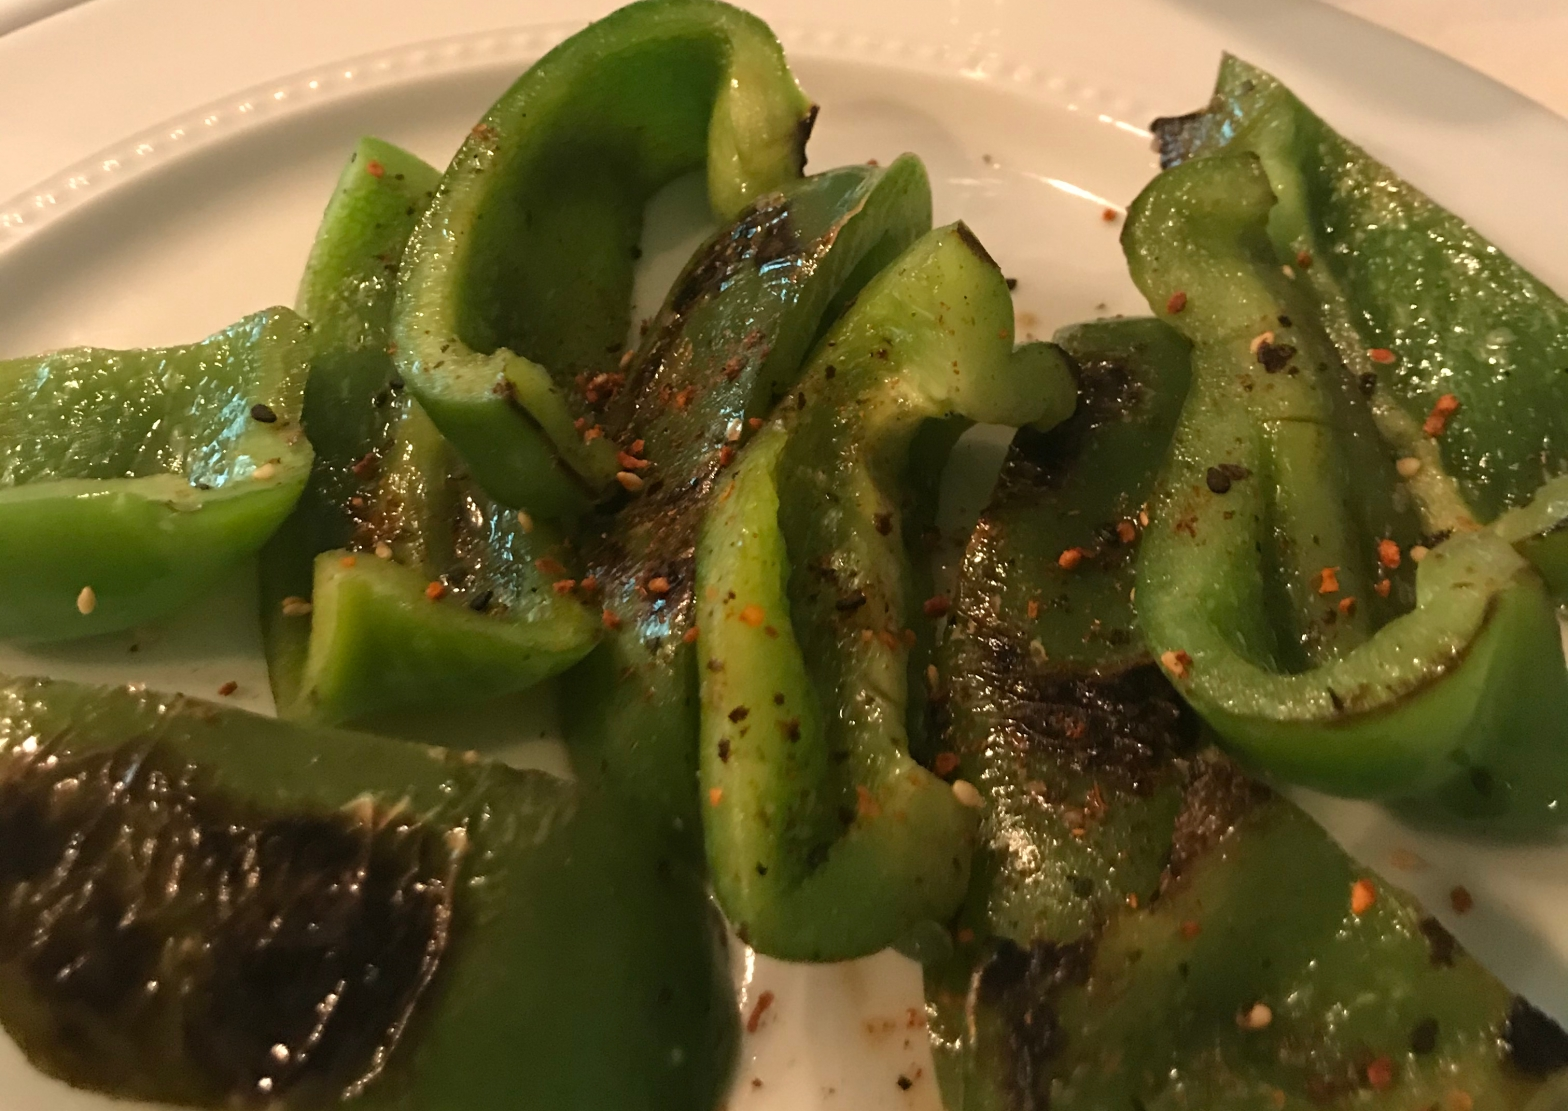 Shishito-style green bell peppers | The Picky Eater Chronicles